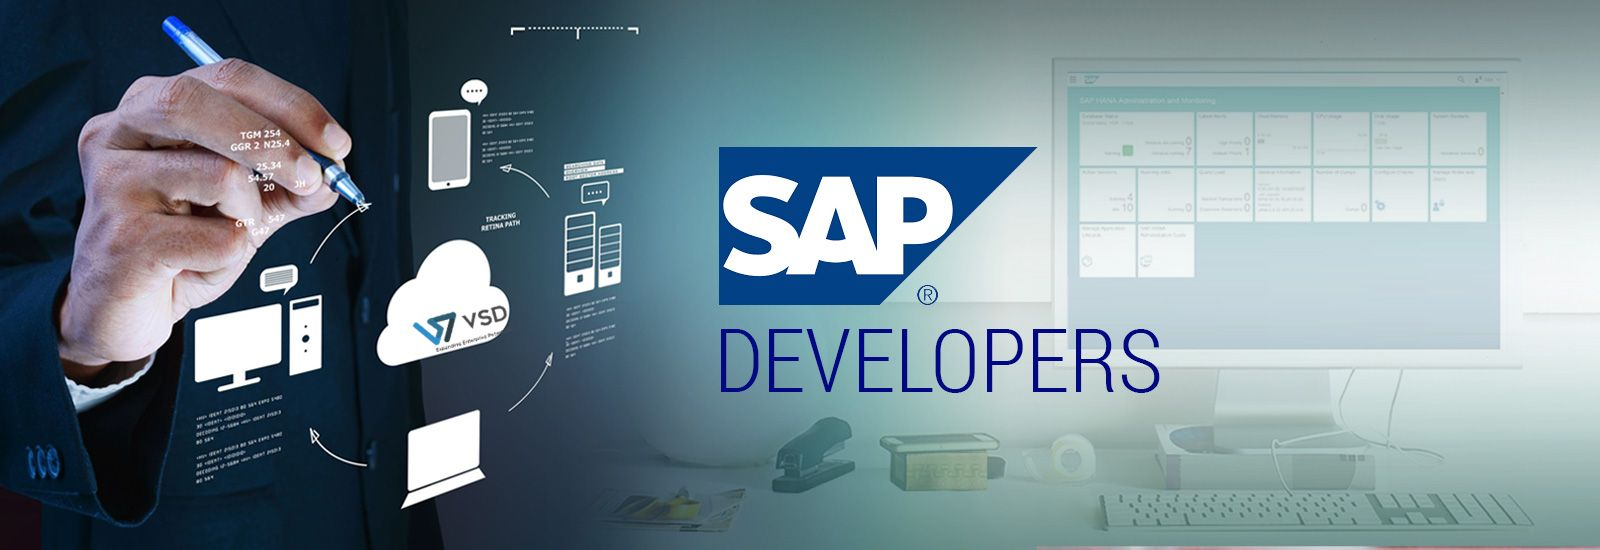 5cdd3b0d76346413ab4f661c300849d3 - Abap Objects Application Development From Scratch